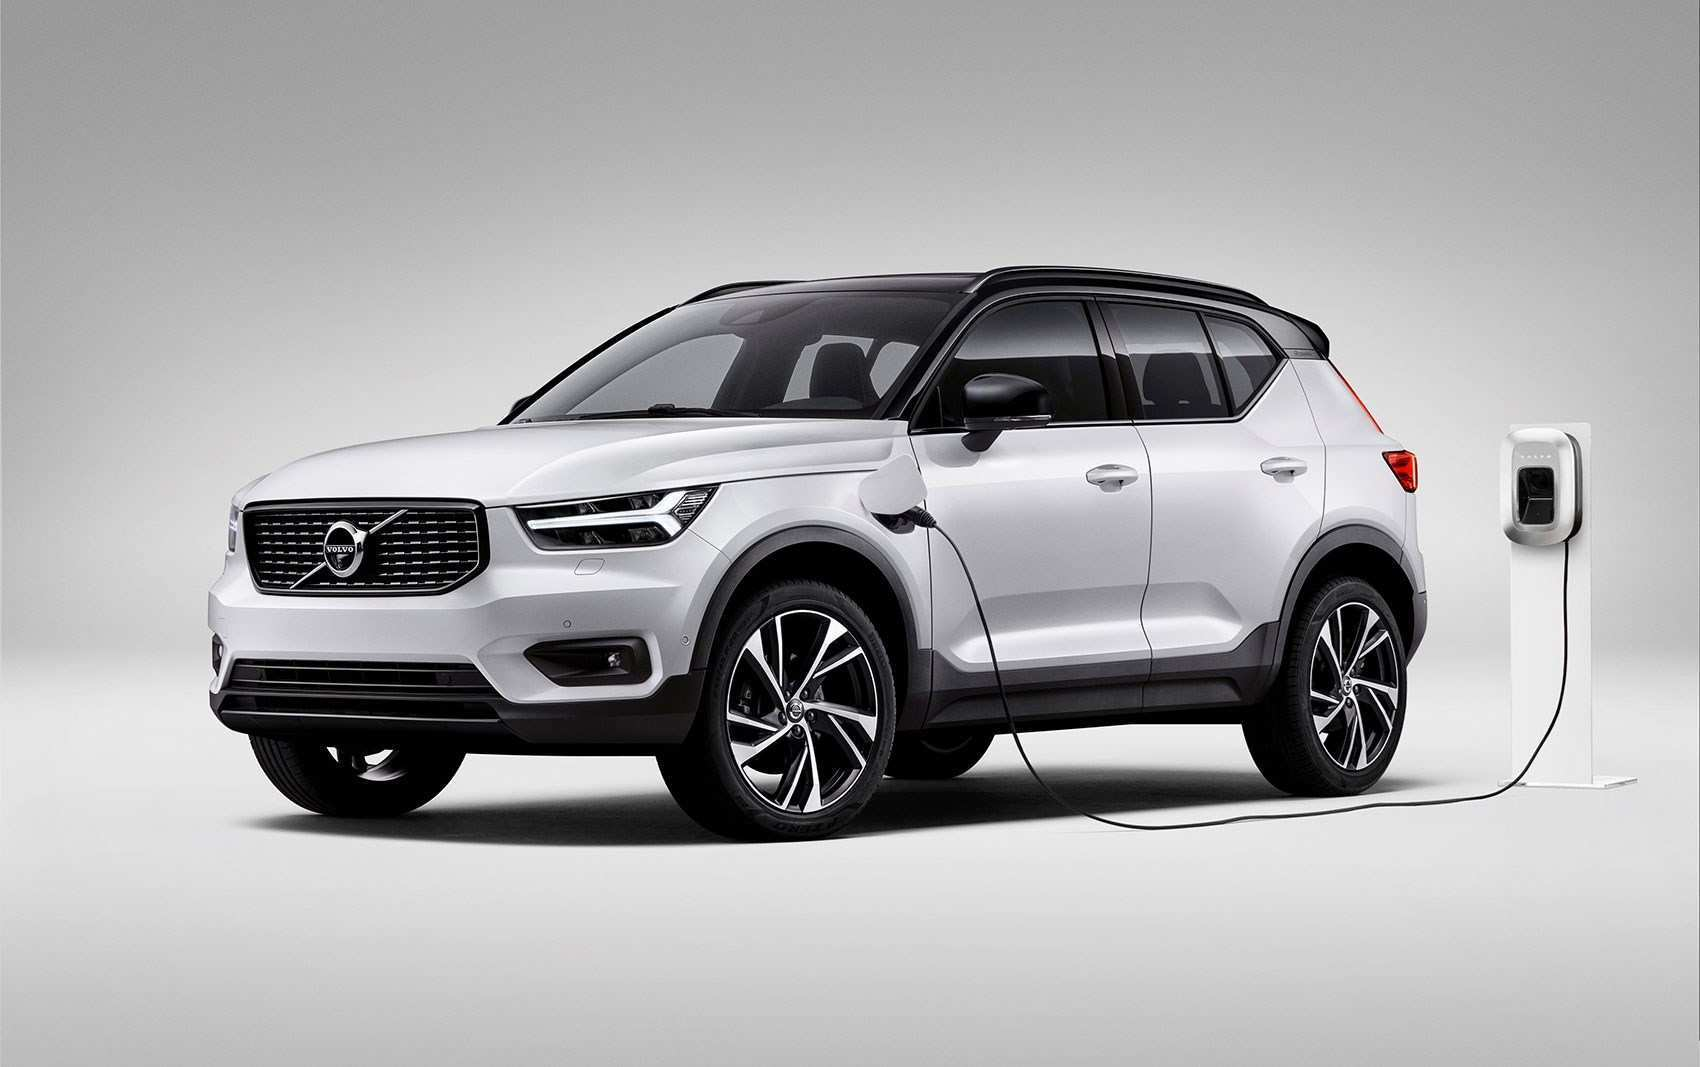 18 All New Best Volvo Plug In 2019 Redesign Price And Review Images by Best Volvo Plug In 2019 Redesign Price And Review